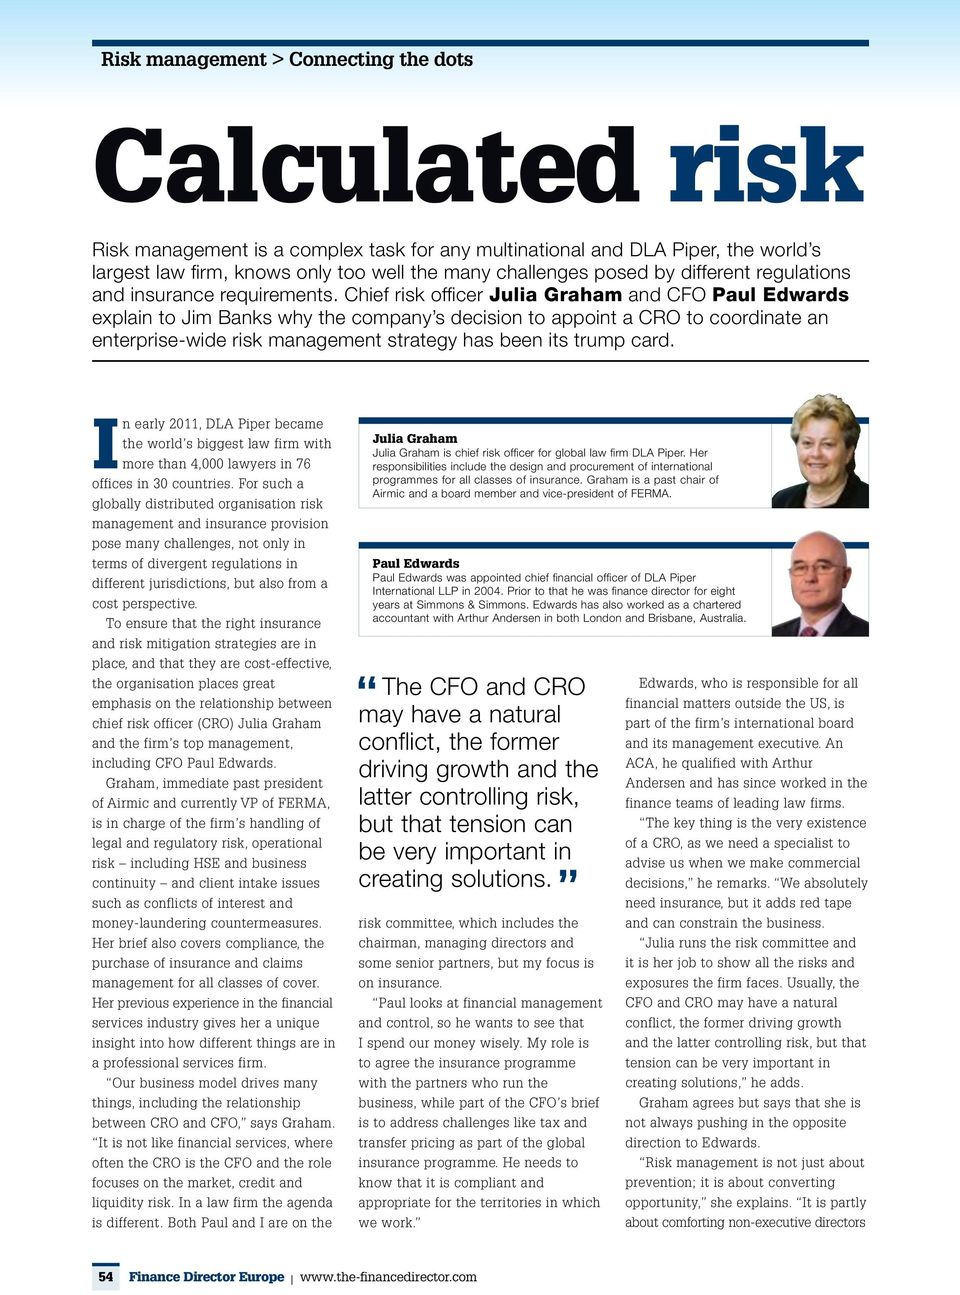 Chief risk officer Julia Graham and CFO Paul Edwards explain to Jim Banks why the company s decision to appoint a CRO to coordinate an enterprise-wide risk management strategy has been its trump card.